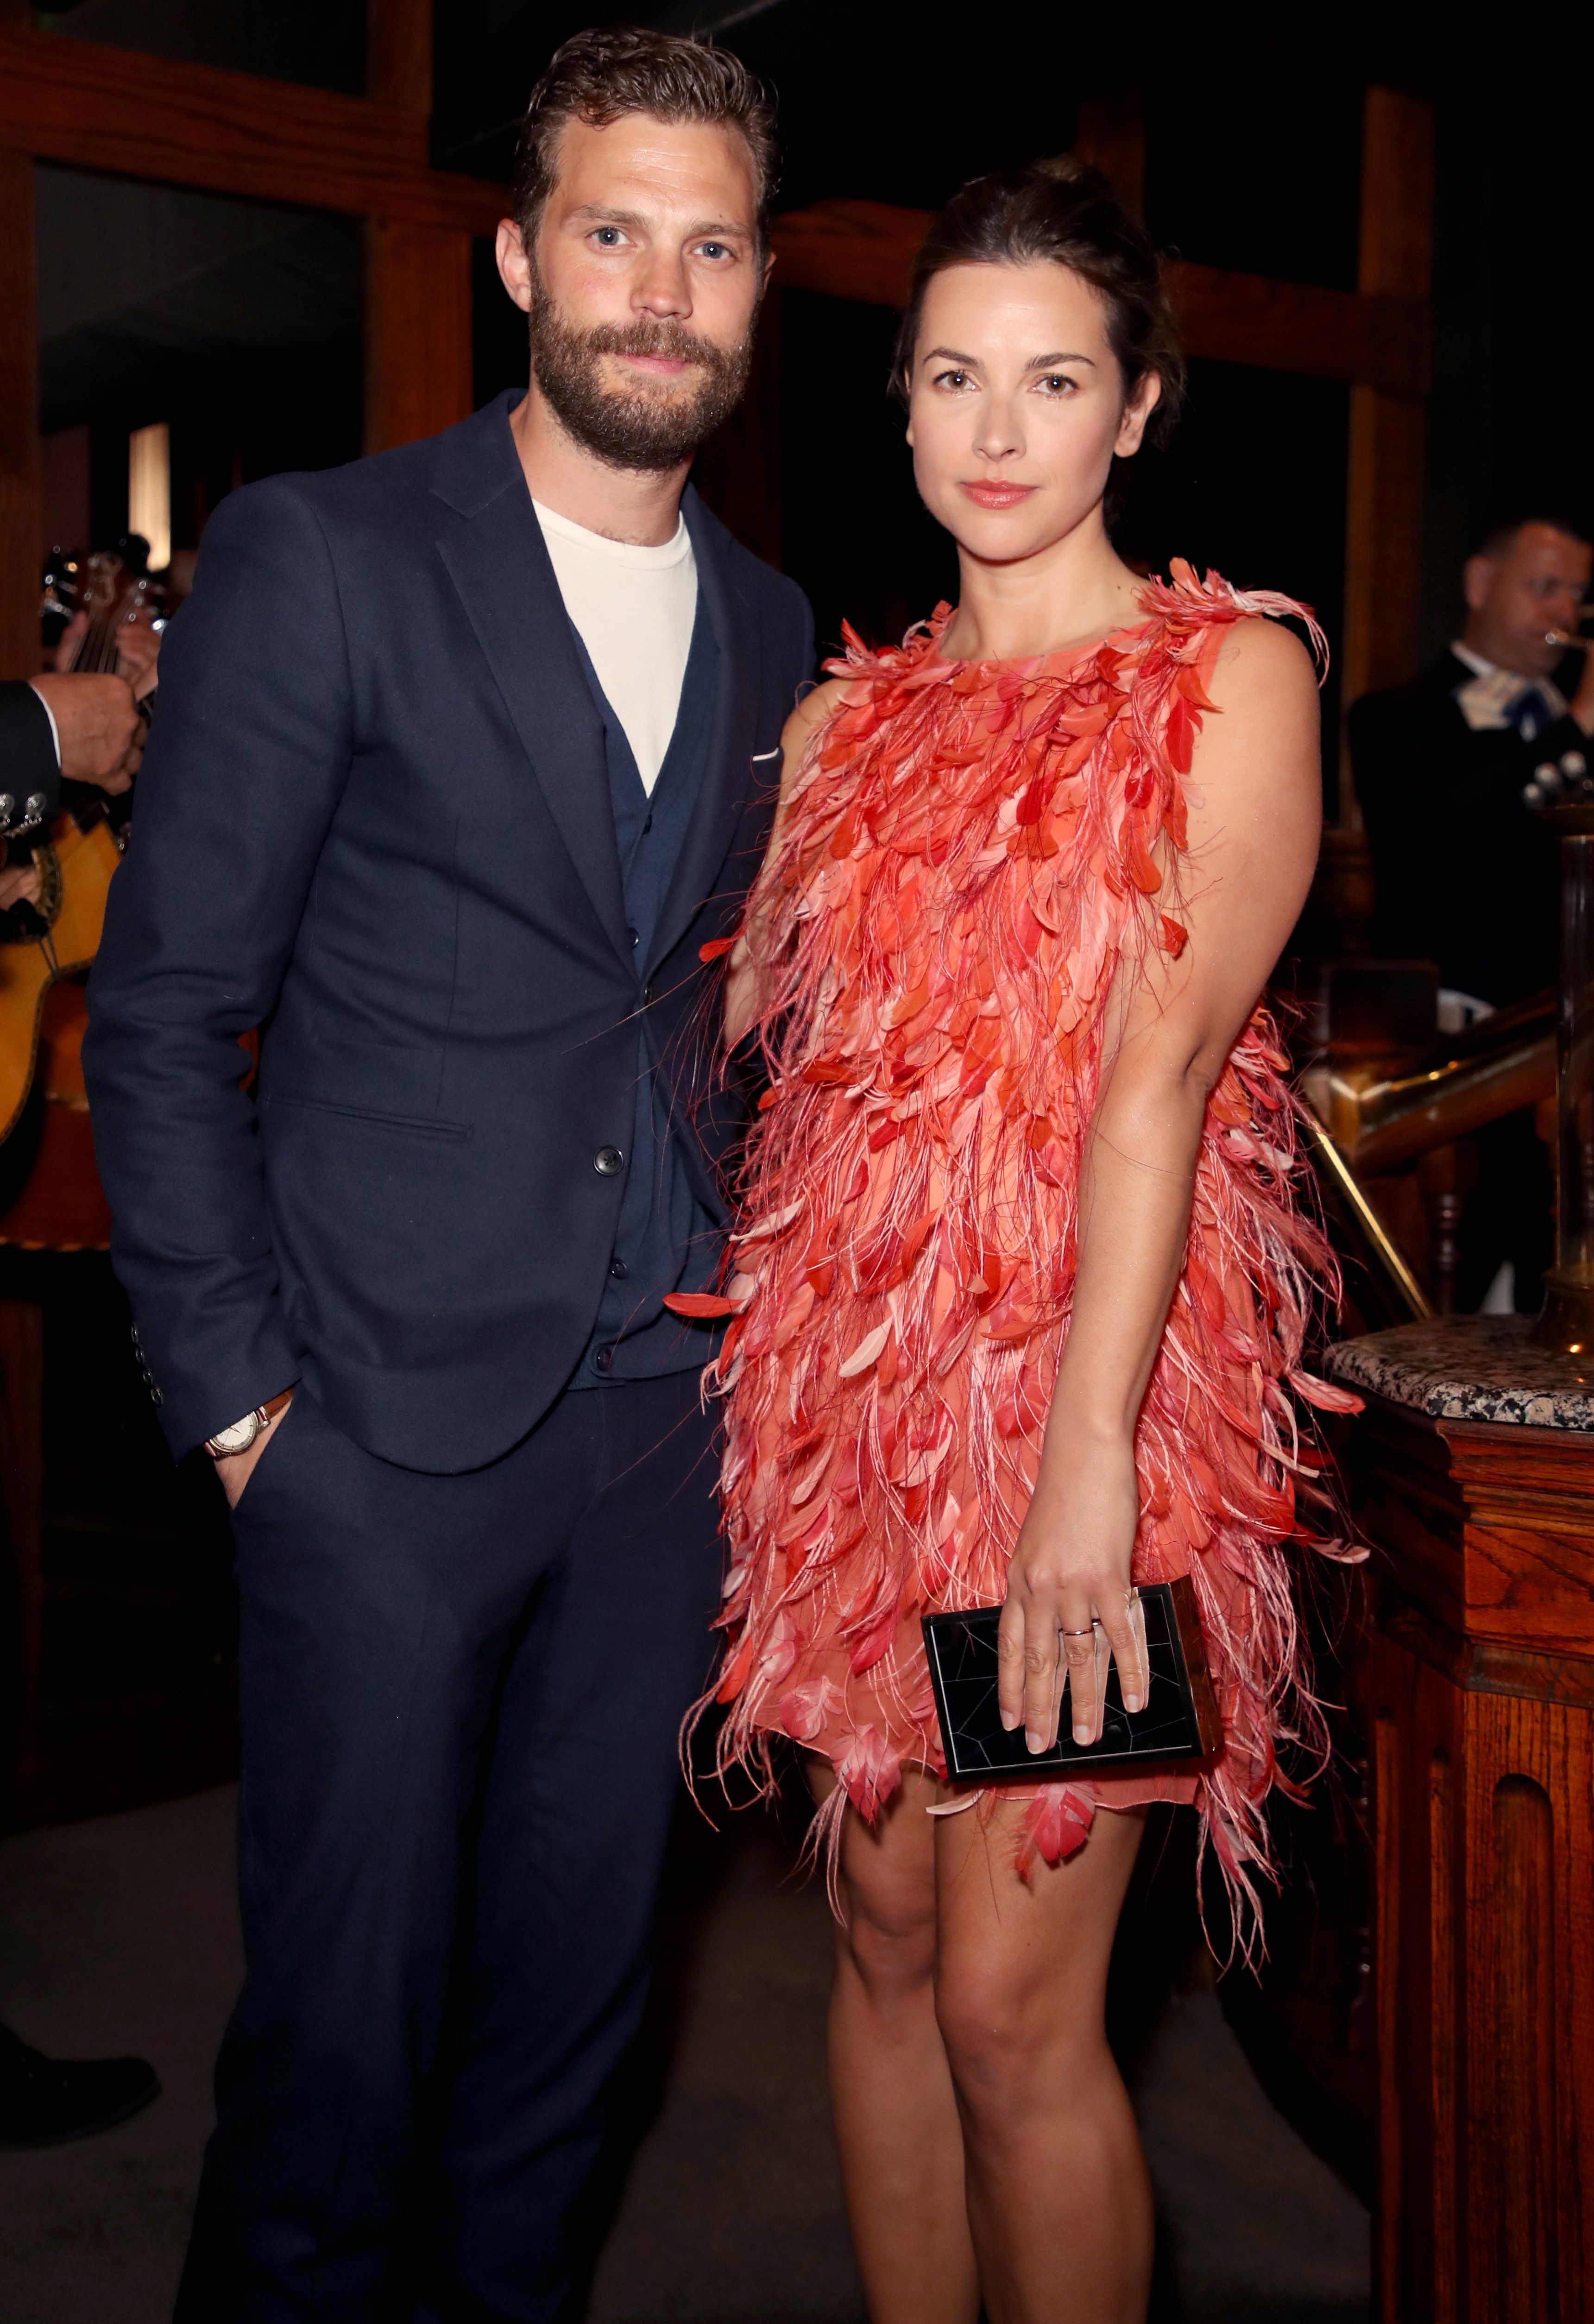 Jamie Dornan and Amelia Warner attend the Chanel and Charles Finch Pre Oscar dinner in Los Angeles on March 3, 2018.